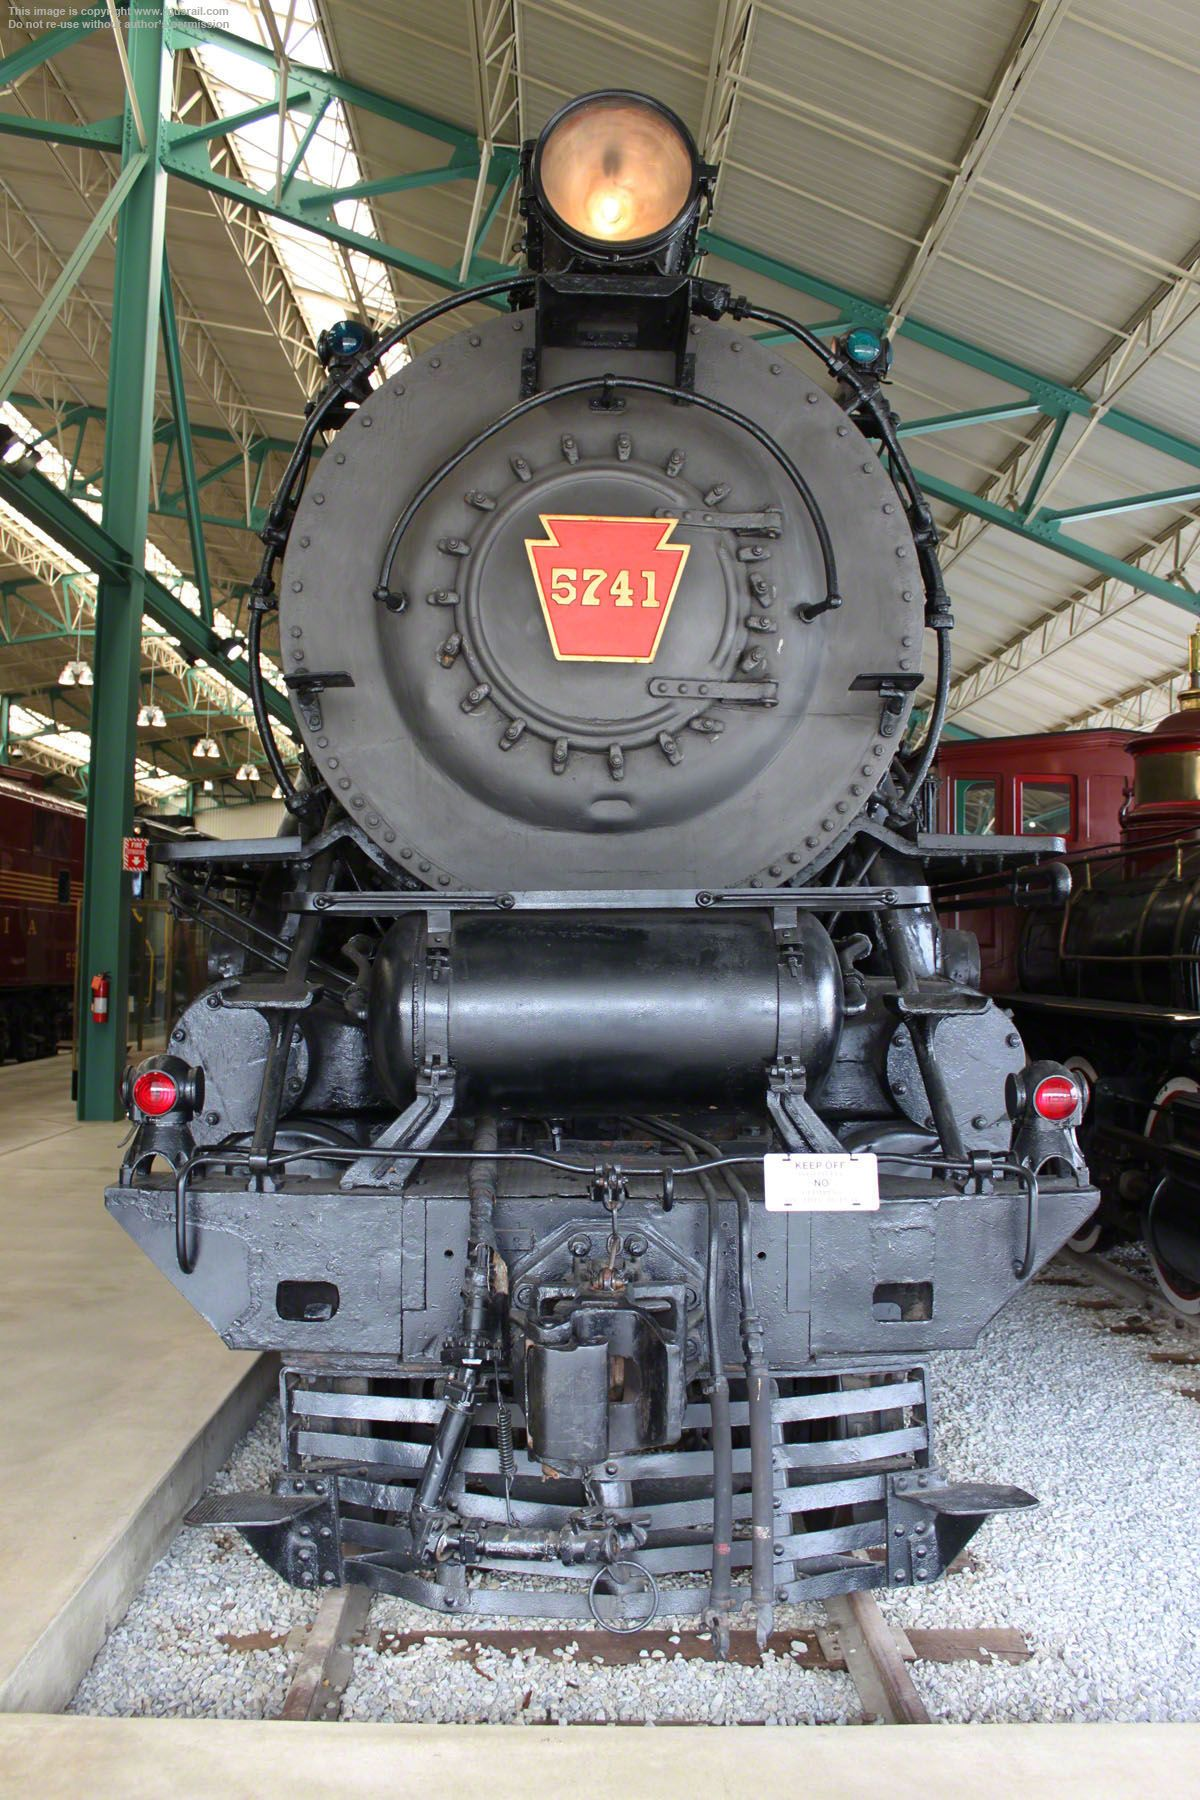 A Locomotive Headlamp Or Headlight Is A Lamp Usually Attached To The Top Or Front Of An Engine With The Purpose Of Lighting Up L Locomotive Train Lamp Train